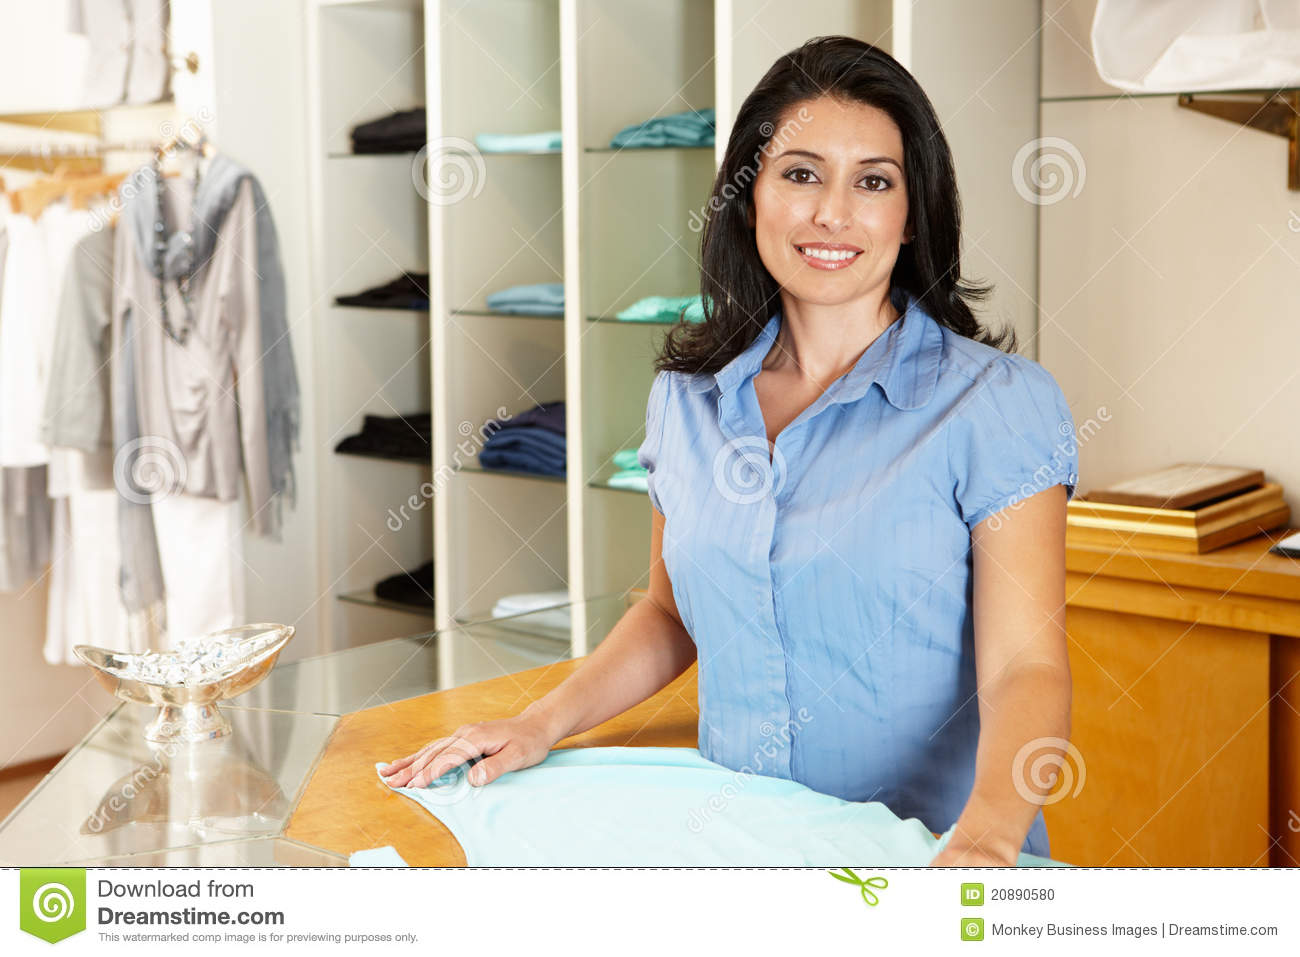 Work in a retail clothing store can be very competitive and sometimes stressful. Some people work for commission, while others strive to have better sales and move up in the company.